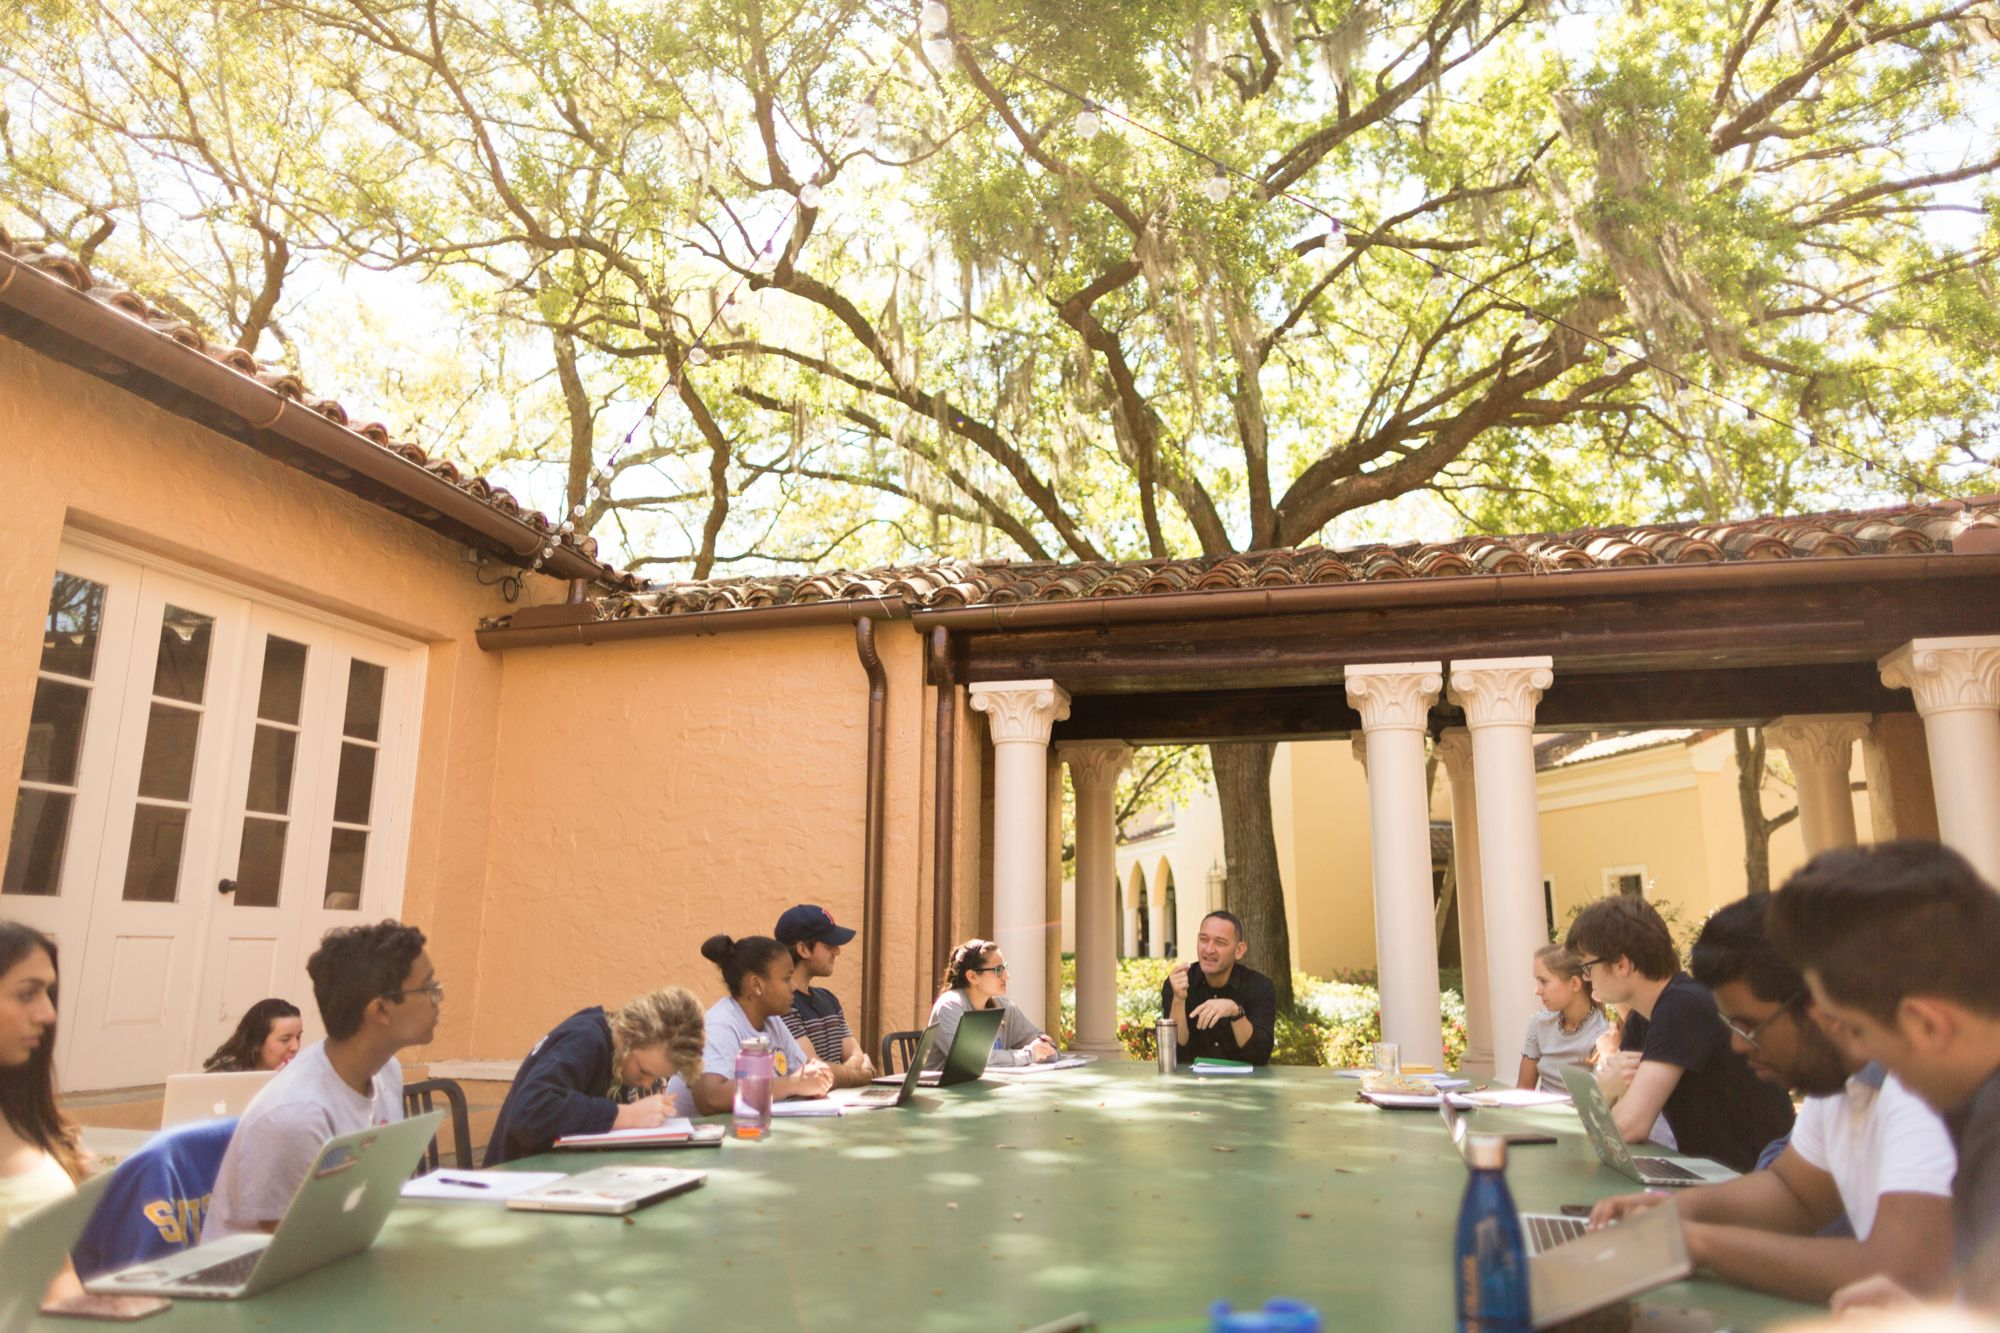 Rollins professor Dan Chong leads a discussion with students in the Orlando Hall outdoor classroom.